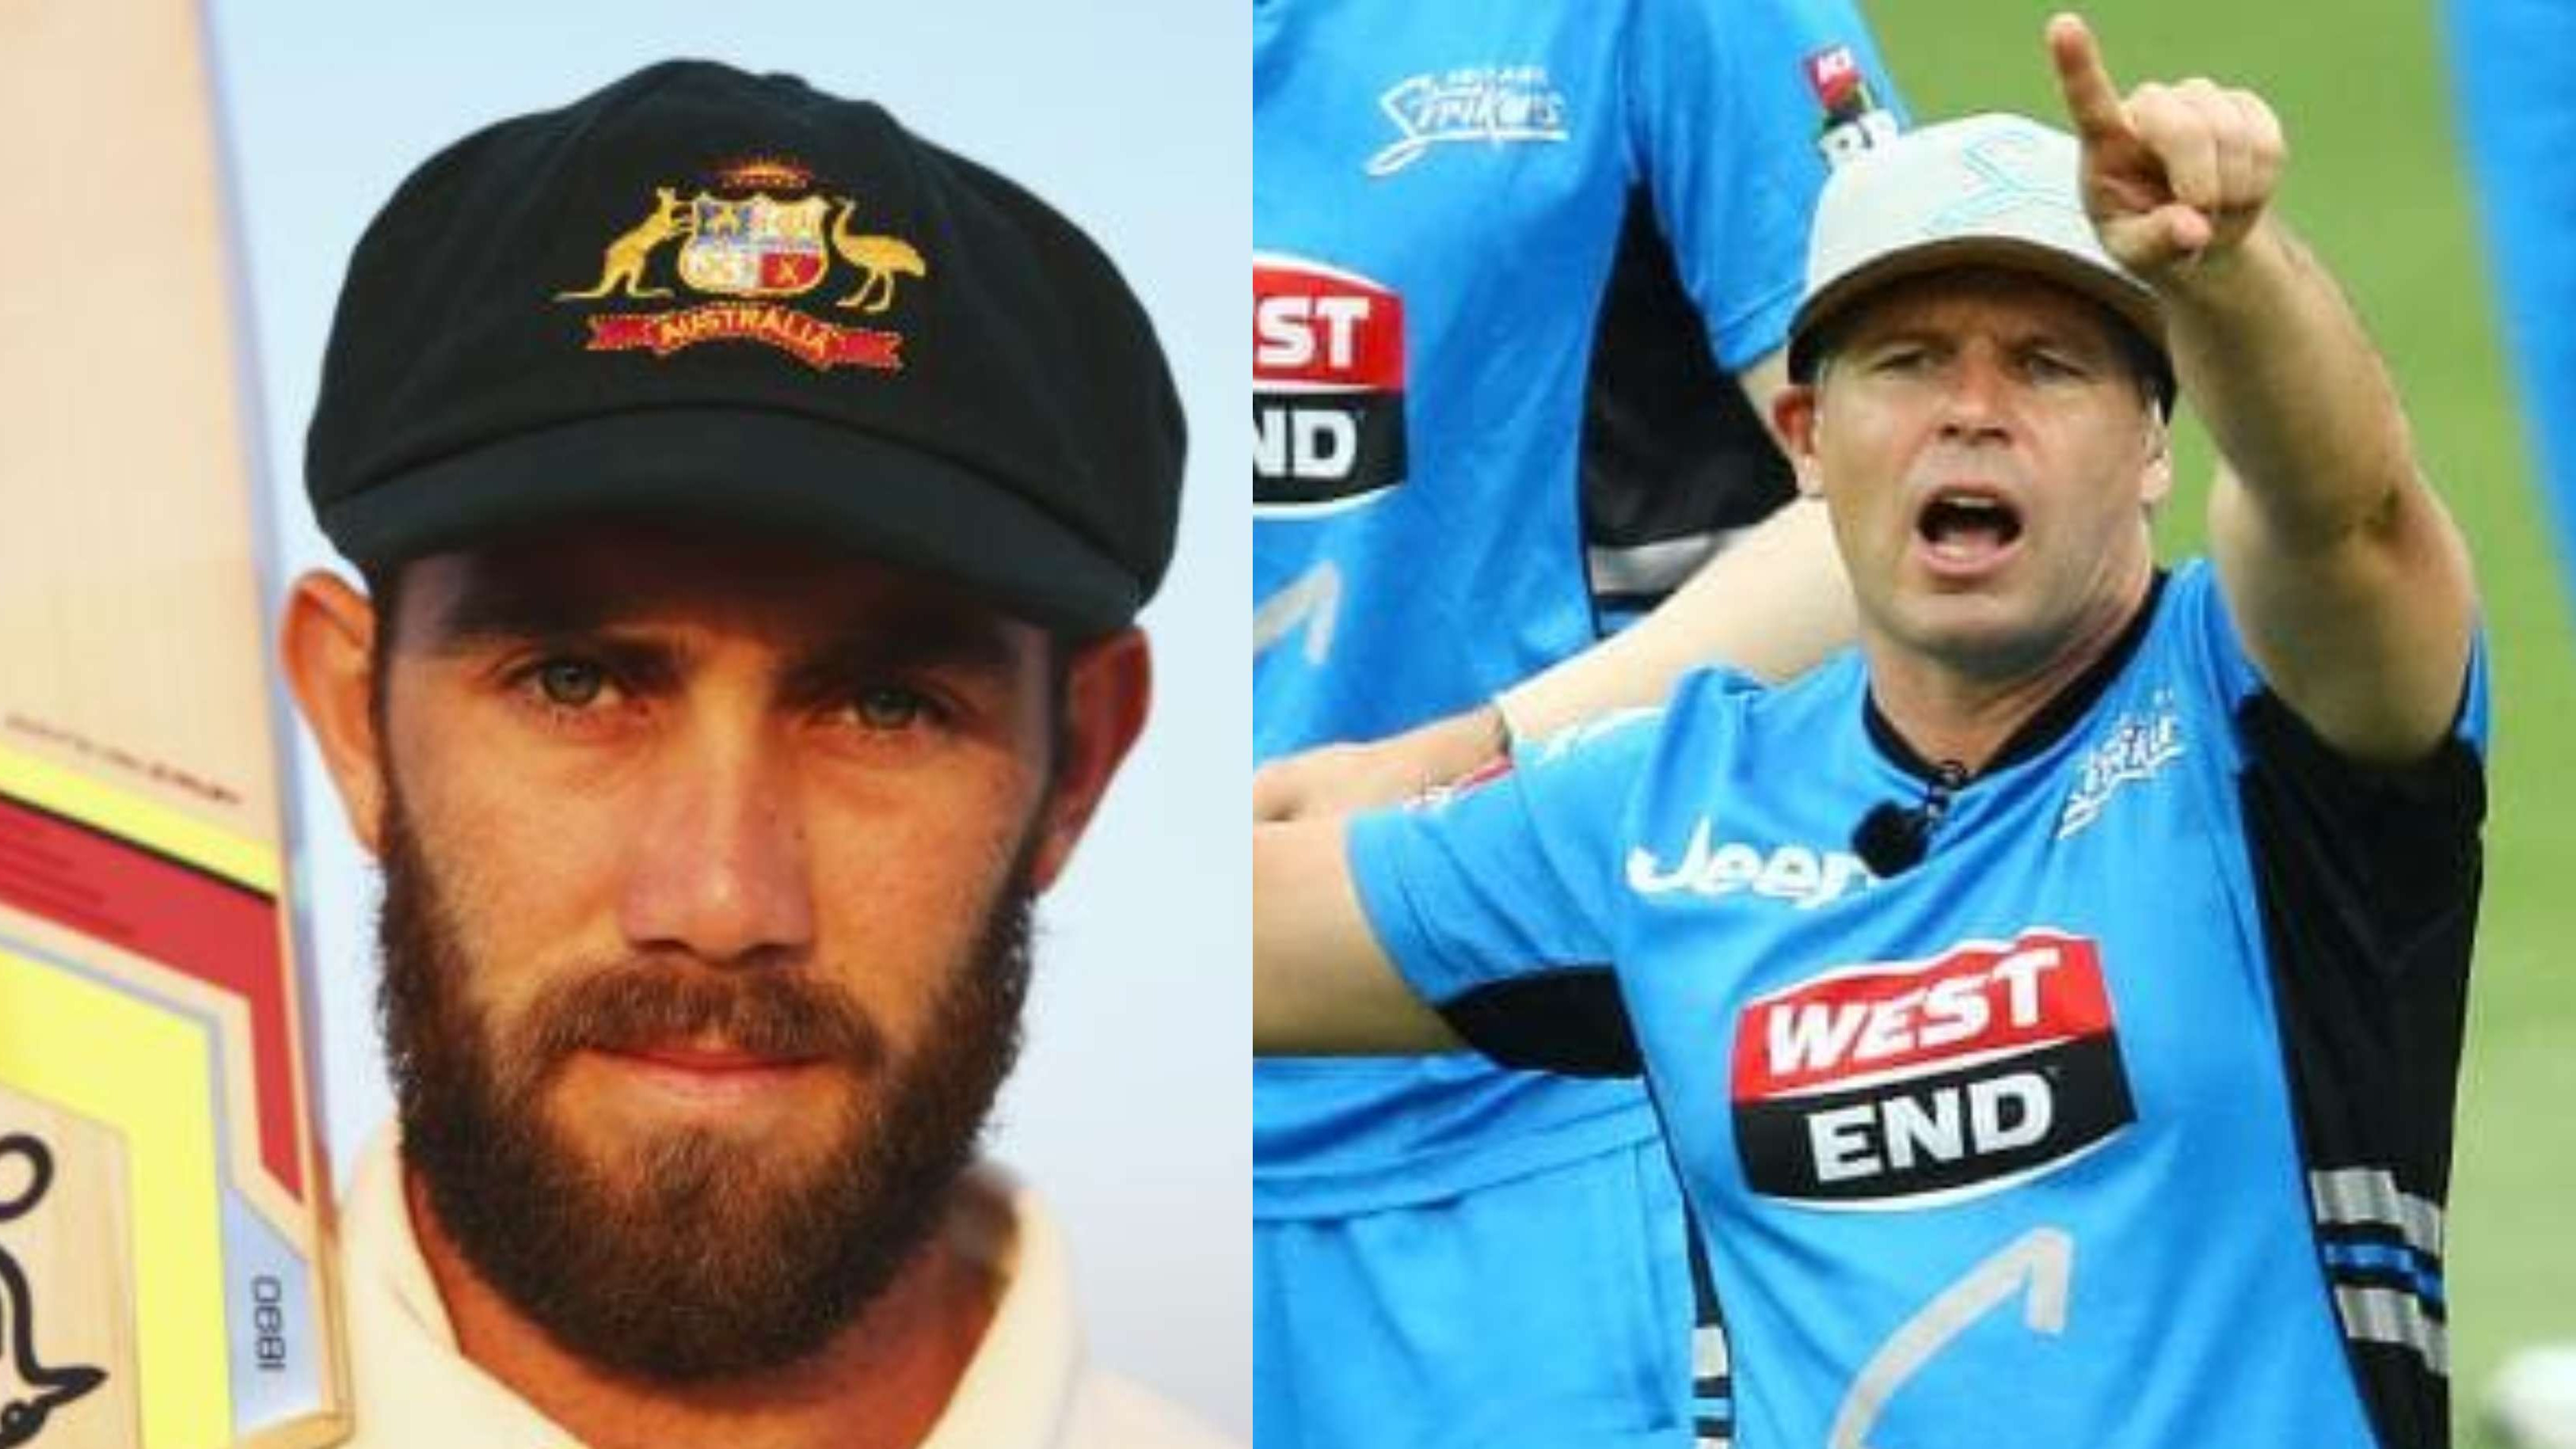 PAK v AUS 2018: Brad Hodge disappointed with Glenn Maxwell's omission from the Australian squad for the tour of UAE